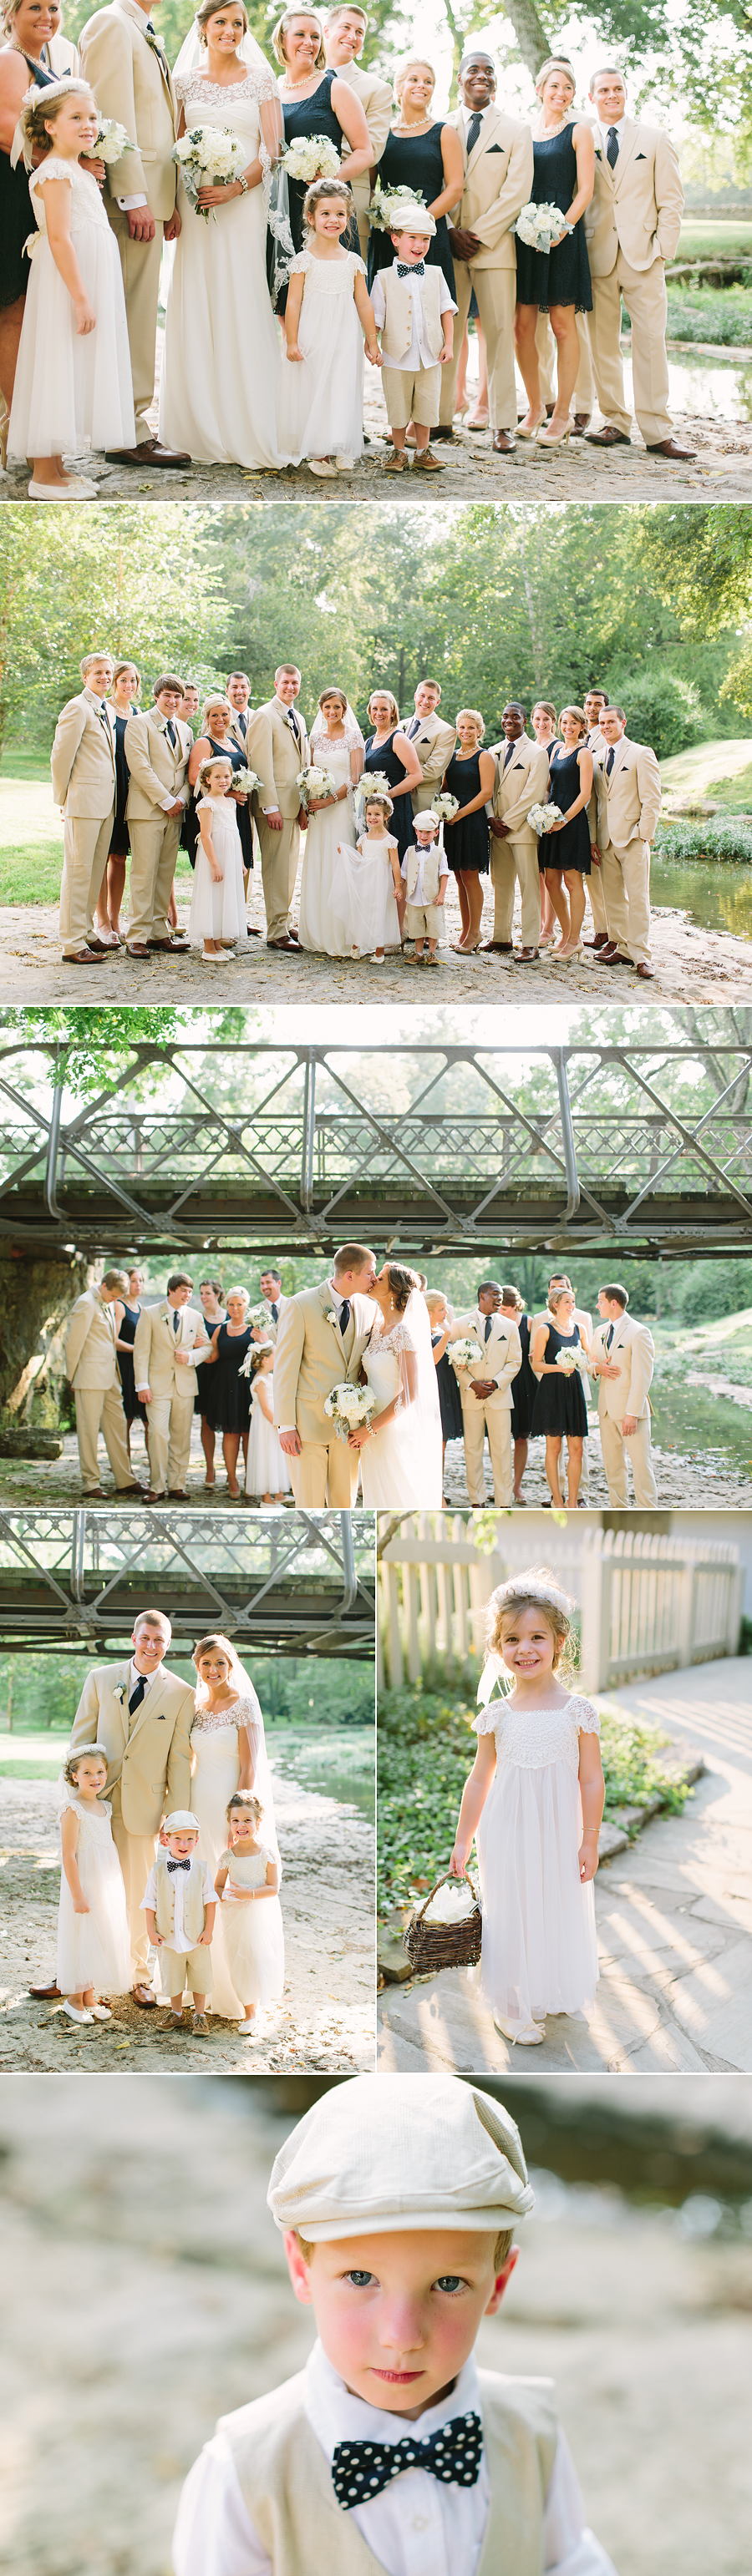 Belle_Meade_Plantation_Wedding_6